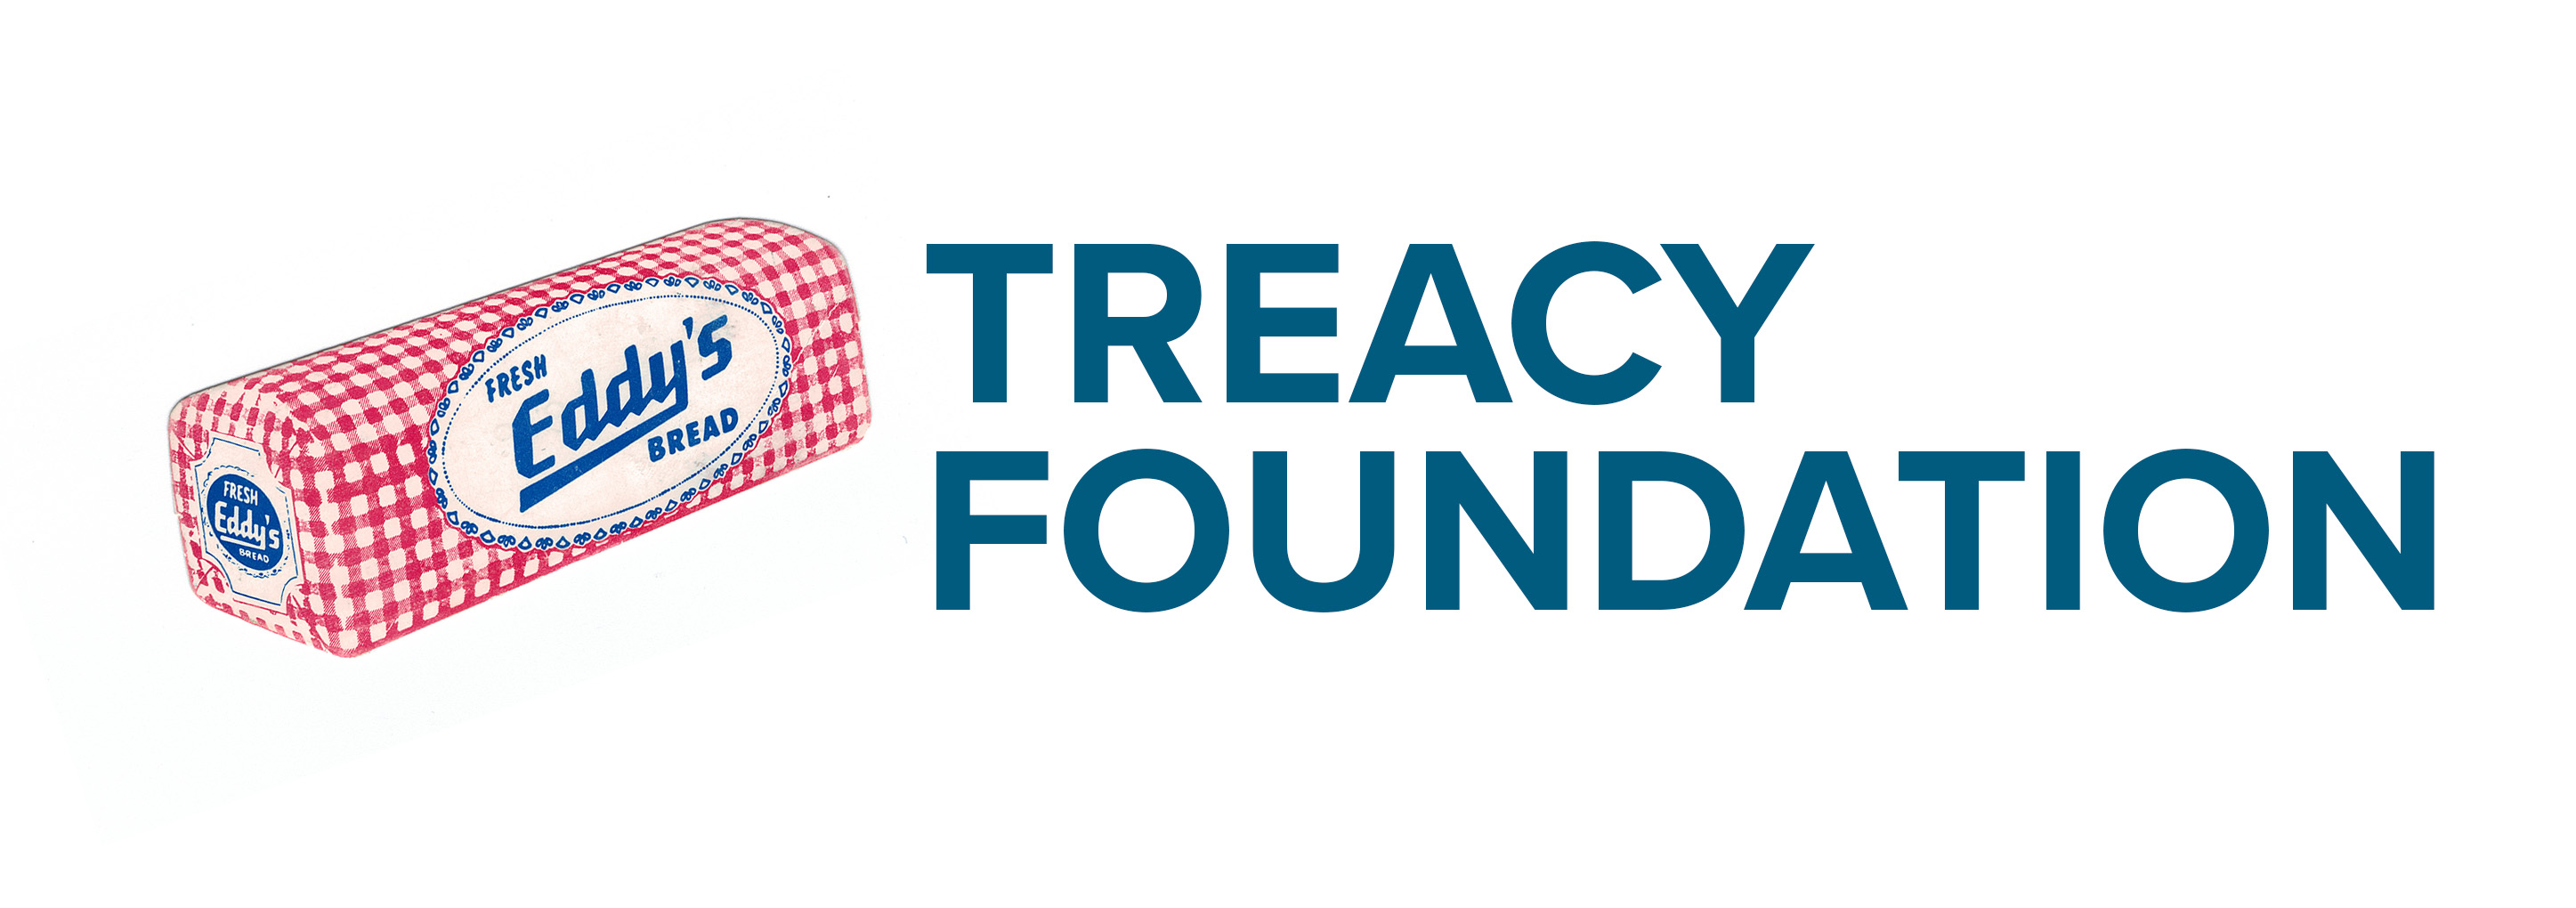 Treacy Foundation